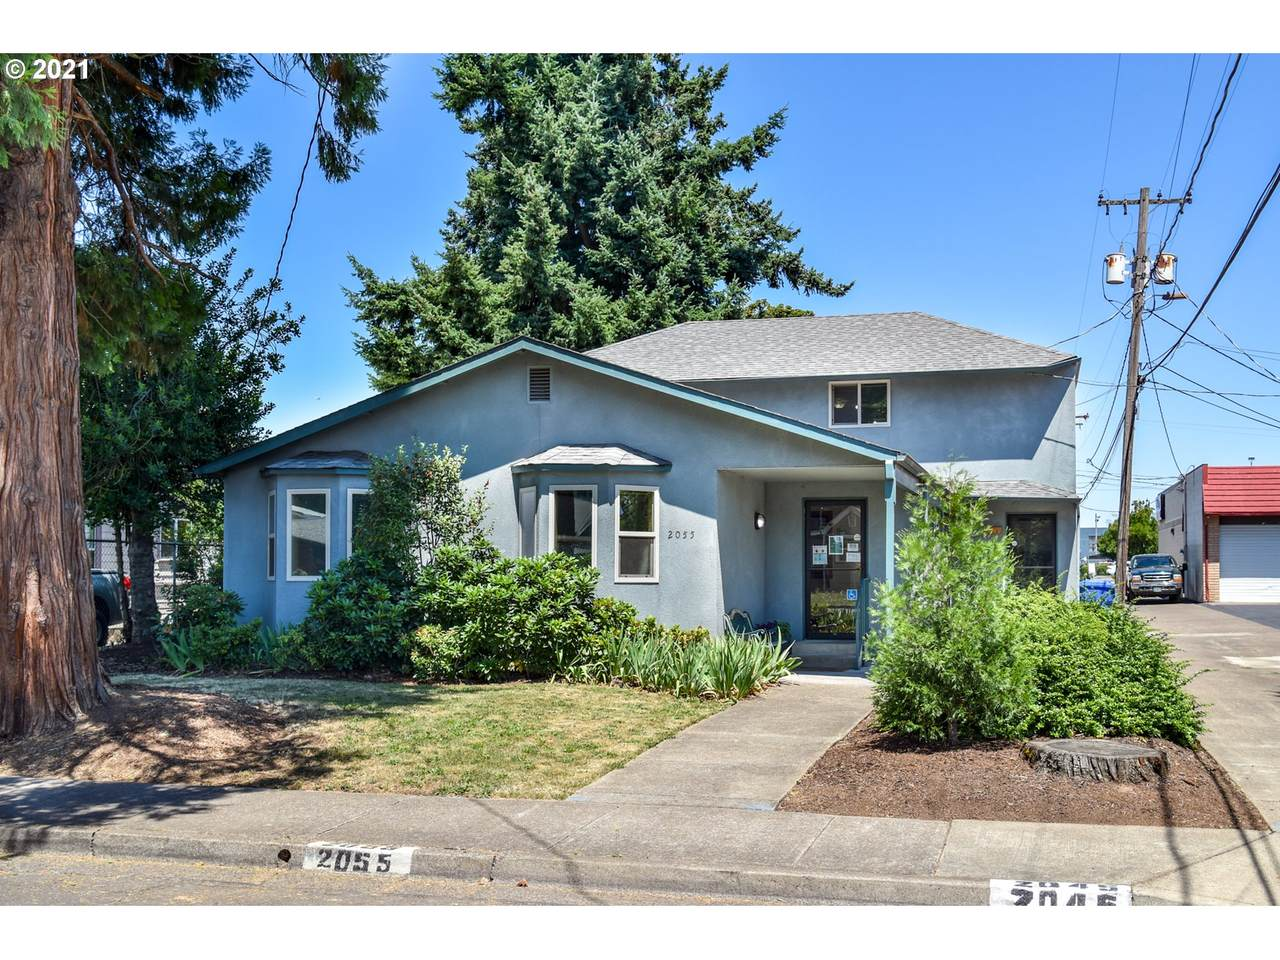 2045 12TH Ave - Photo 1